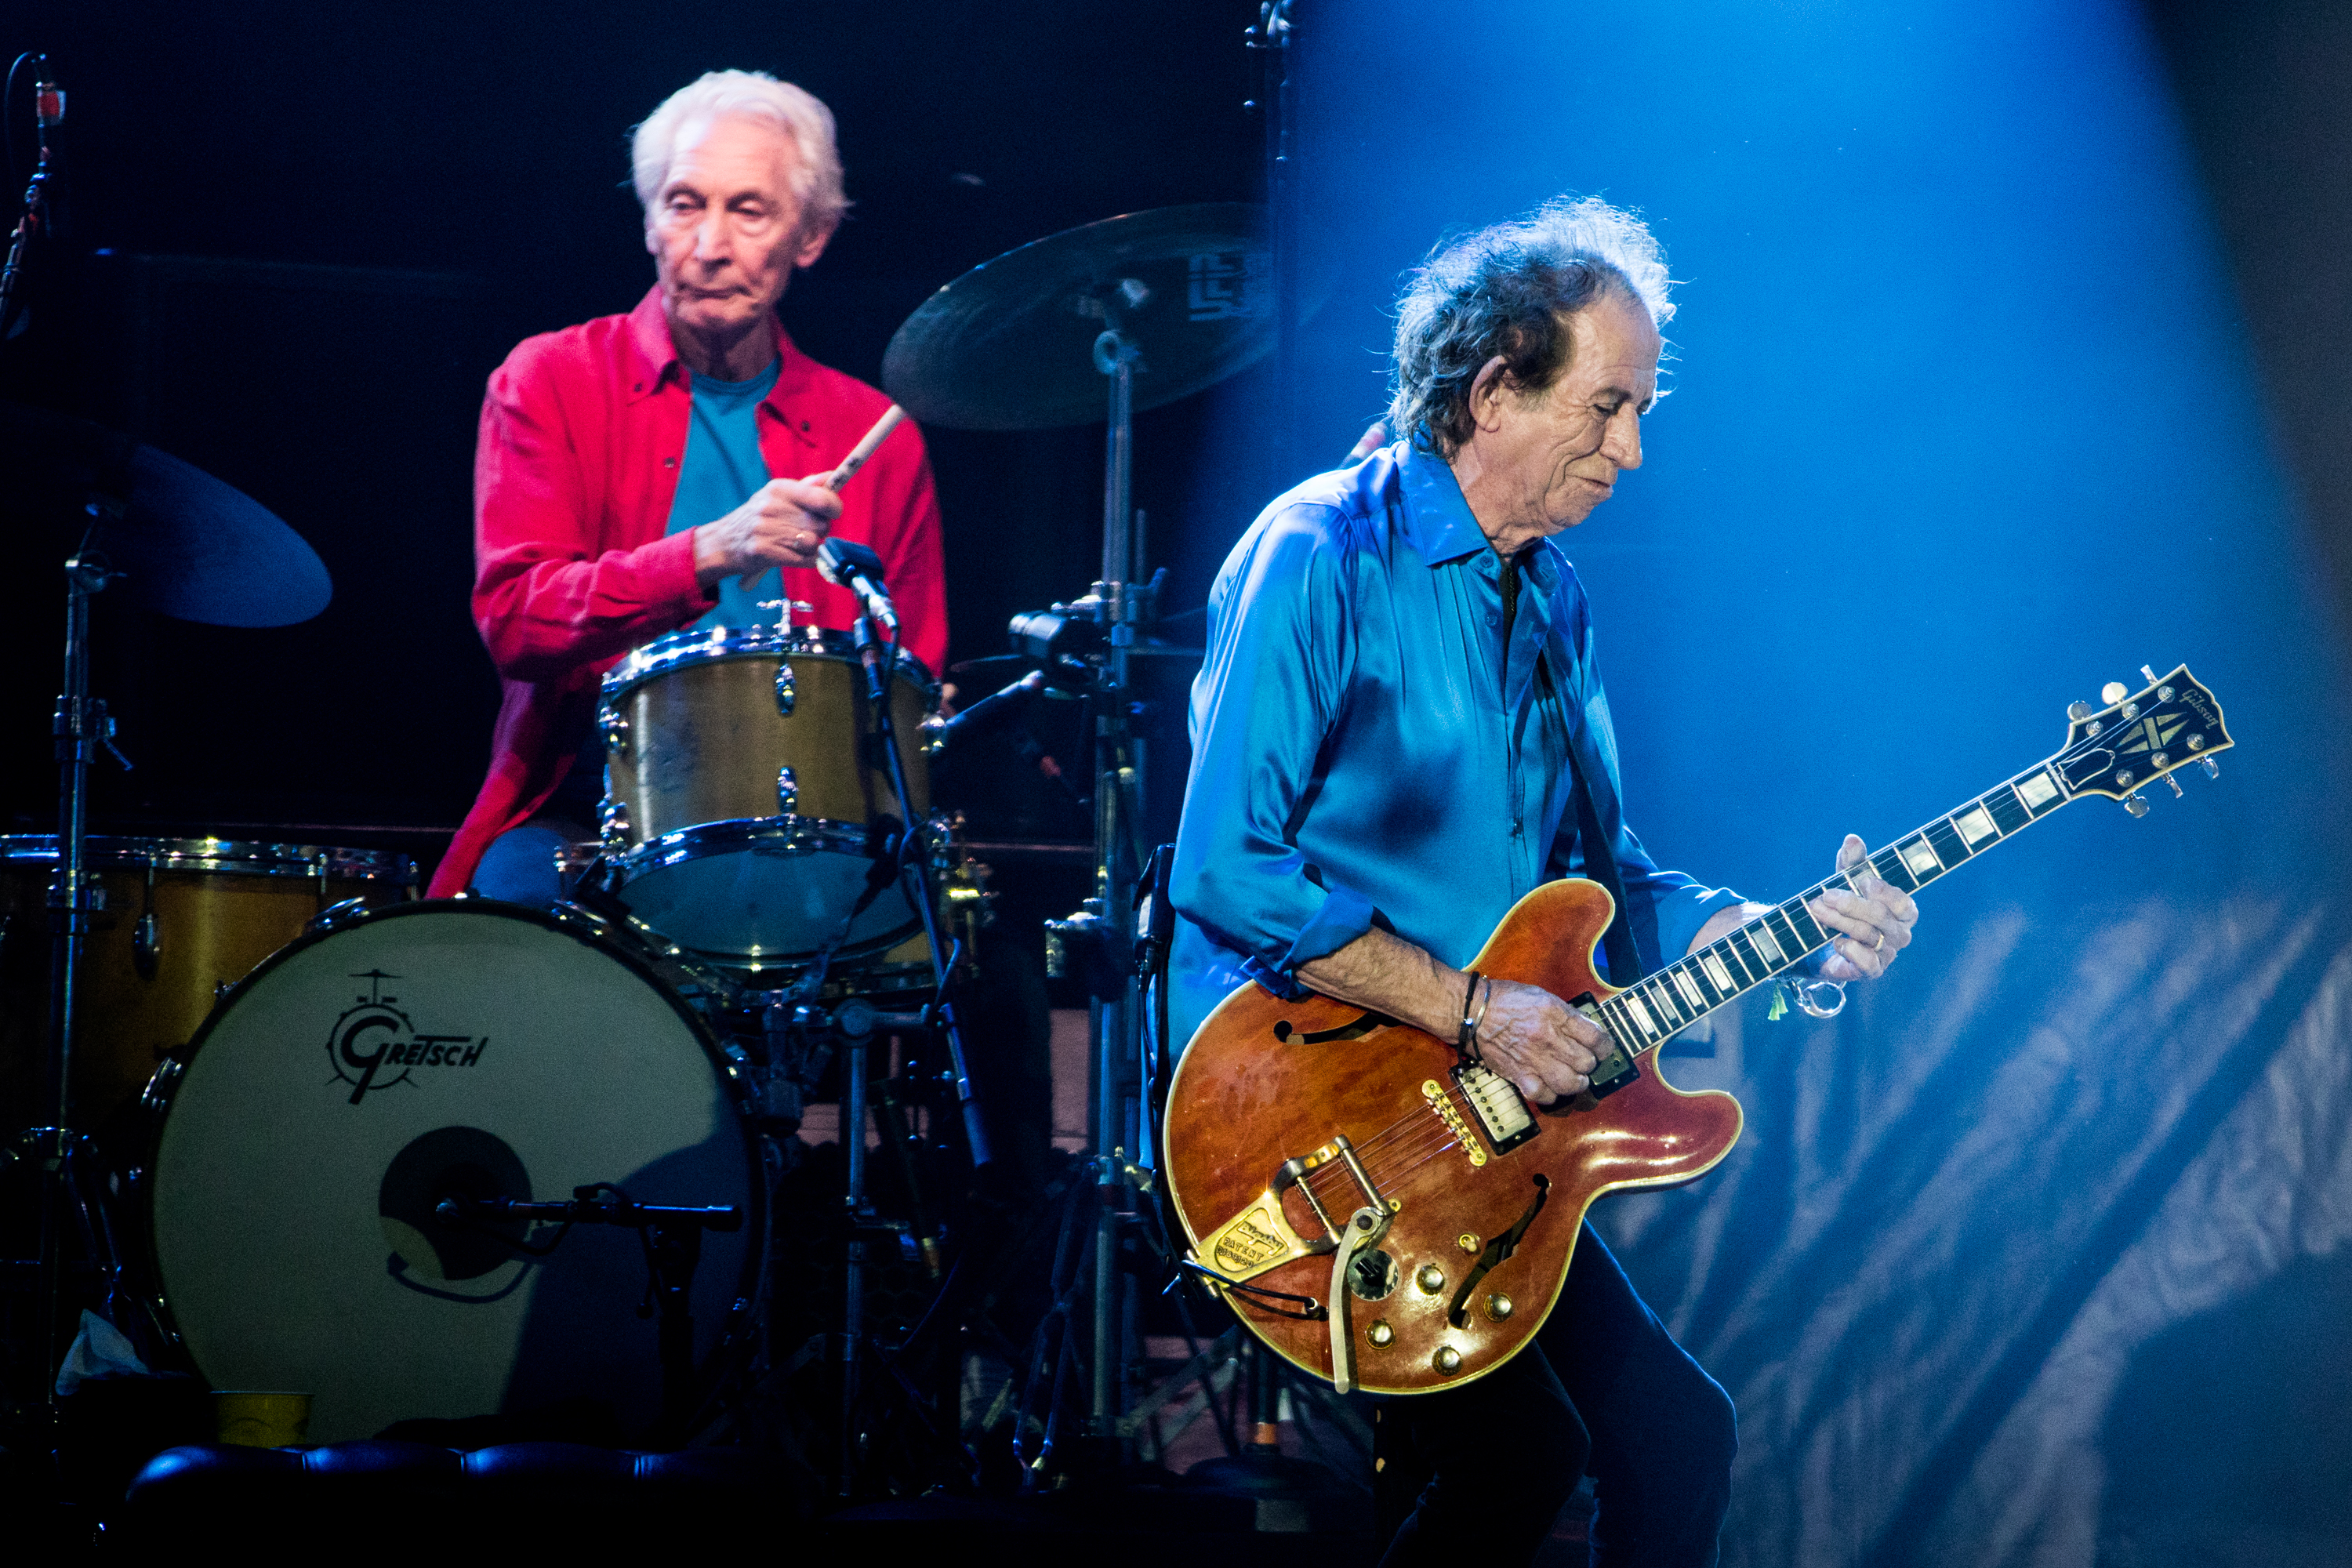 MIAMI, FLORIDA - AUGUST 30: Charlie Watts and Keith Richards of The Rolling Stones perform onstage at Hard Rock Stadium on August 30, 2019 in Miami, Florida. (Photo by Rich Fury/Getty Images)